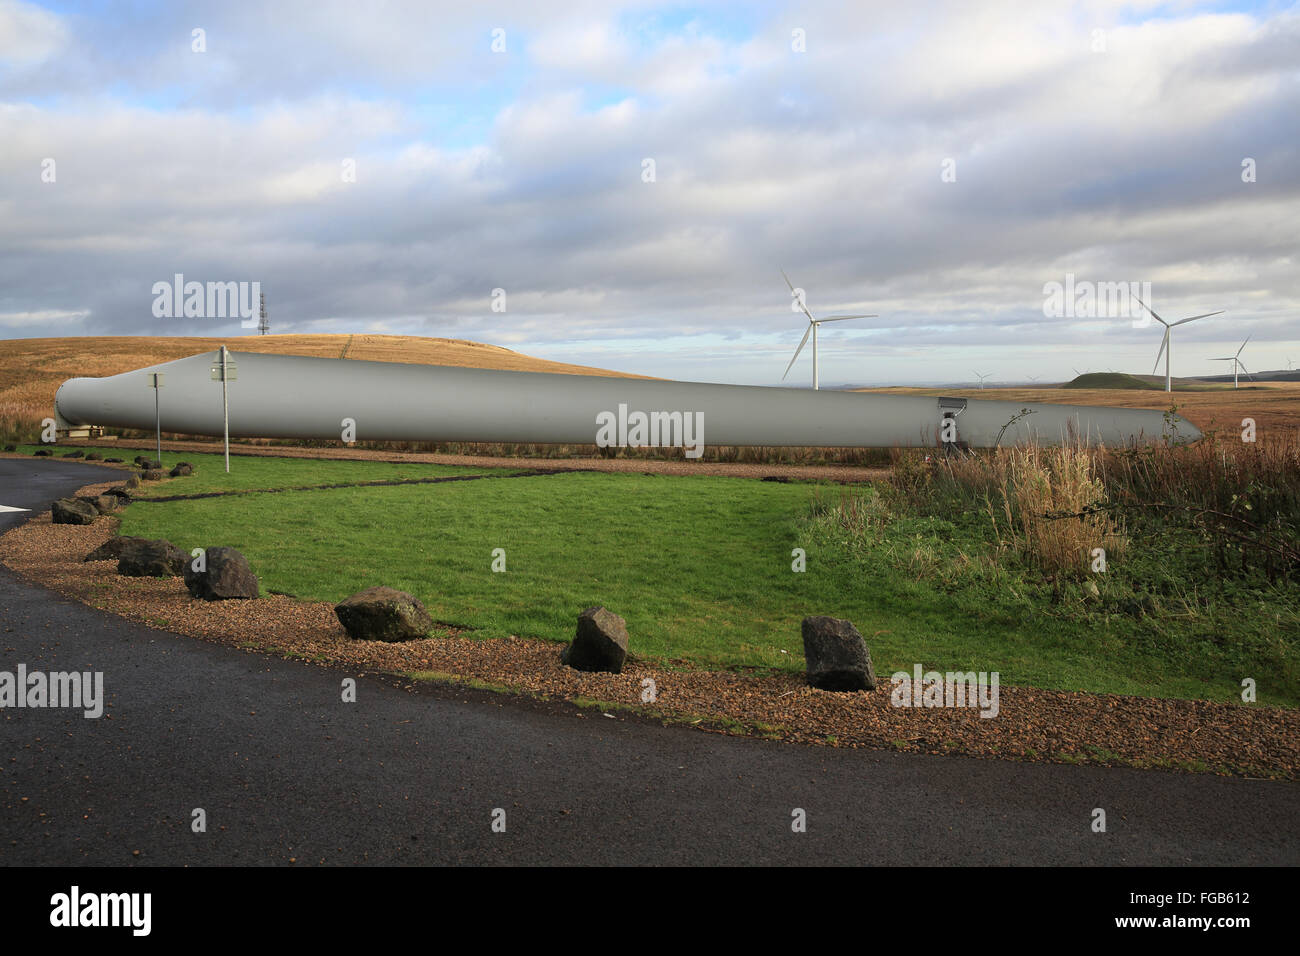 A blade from a wind turbine at Whitelee, the UK's largest onshore windfarm, near Glasgow, in Scotland, UK - Stock Image